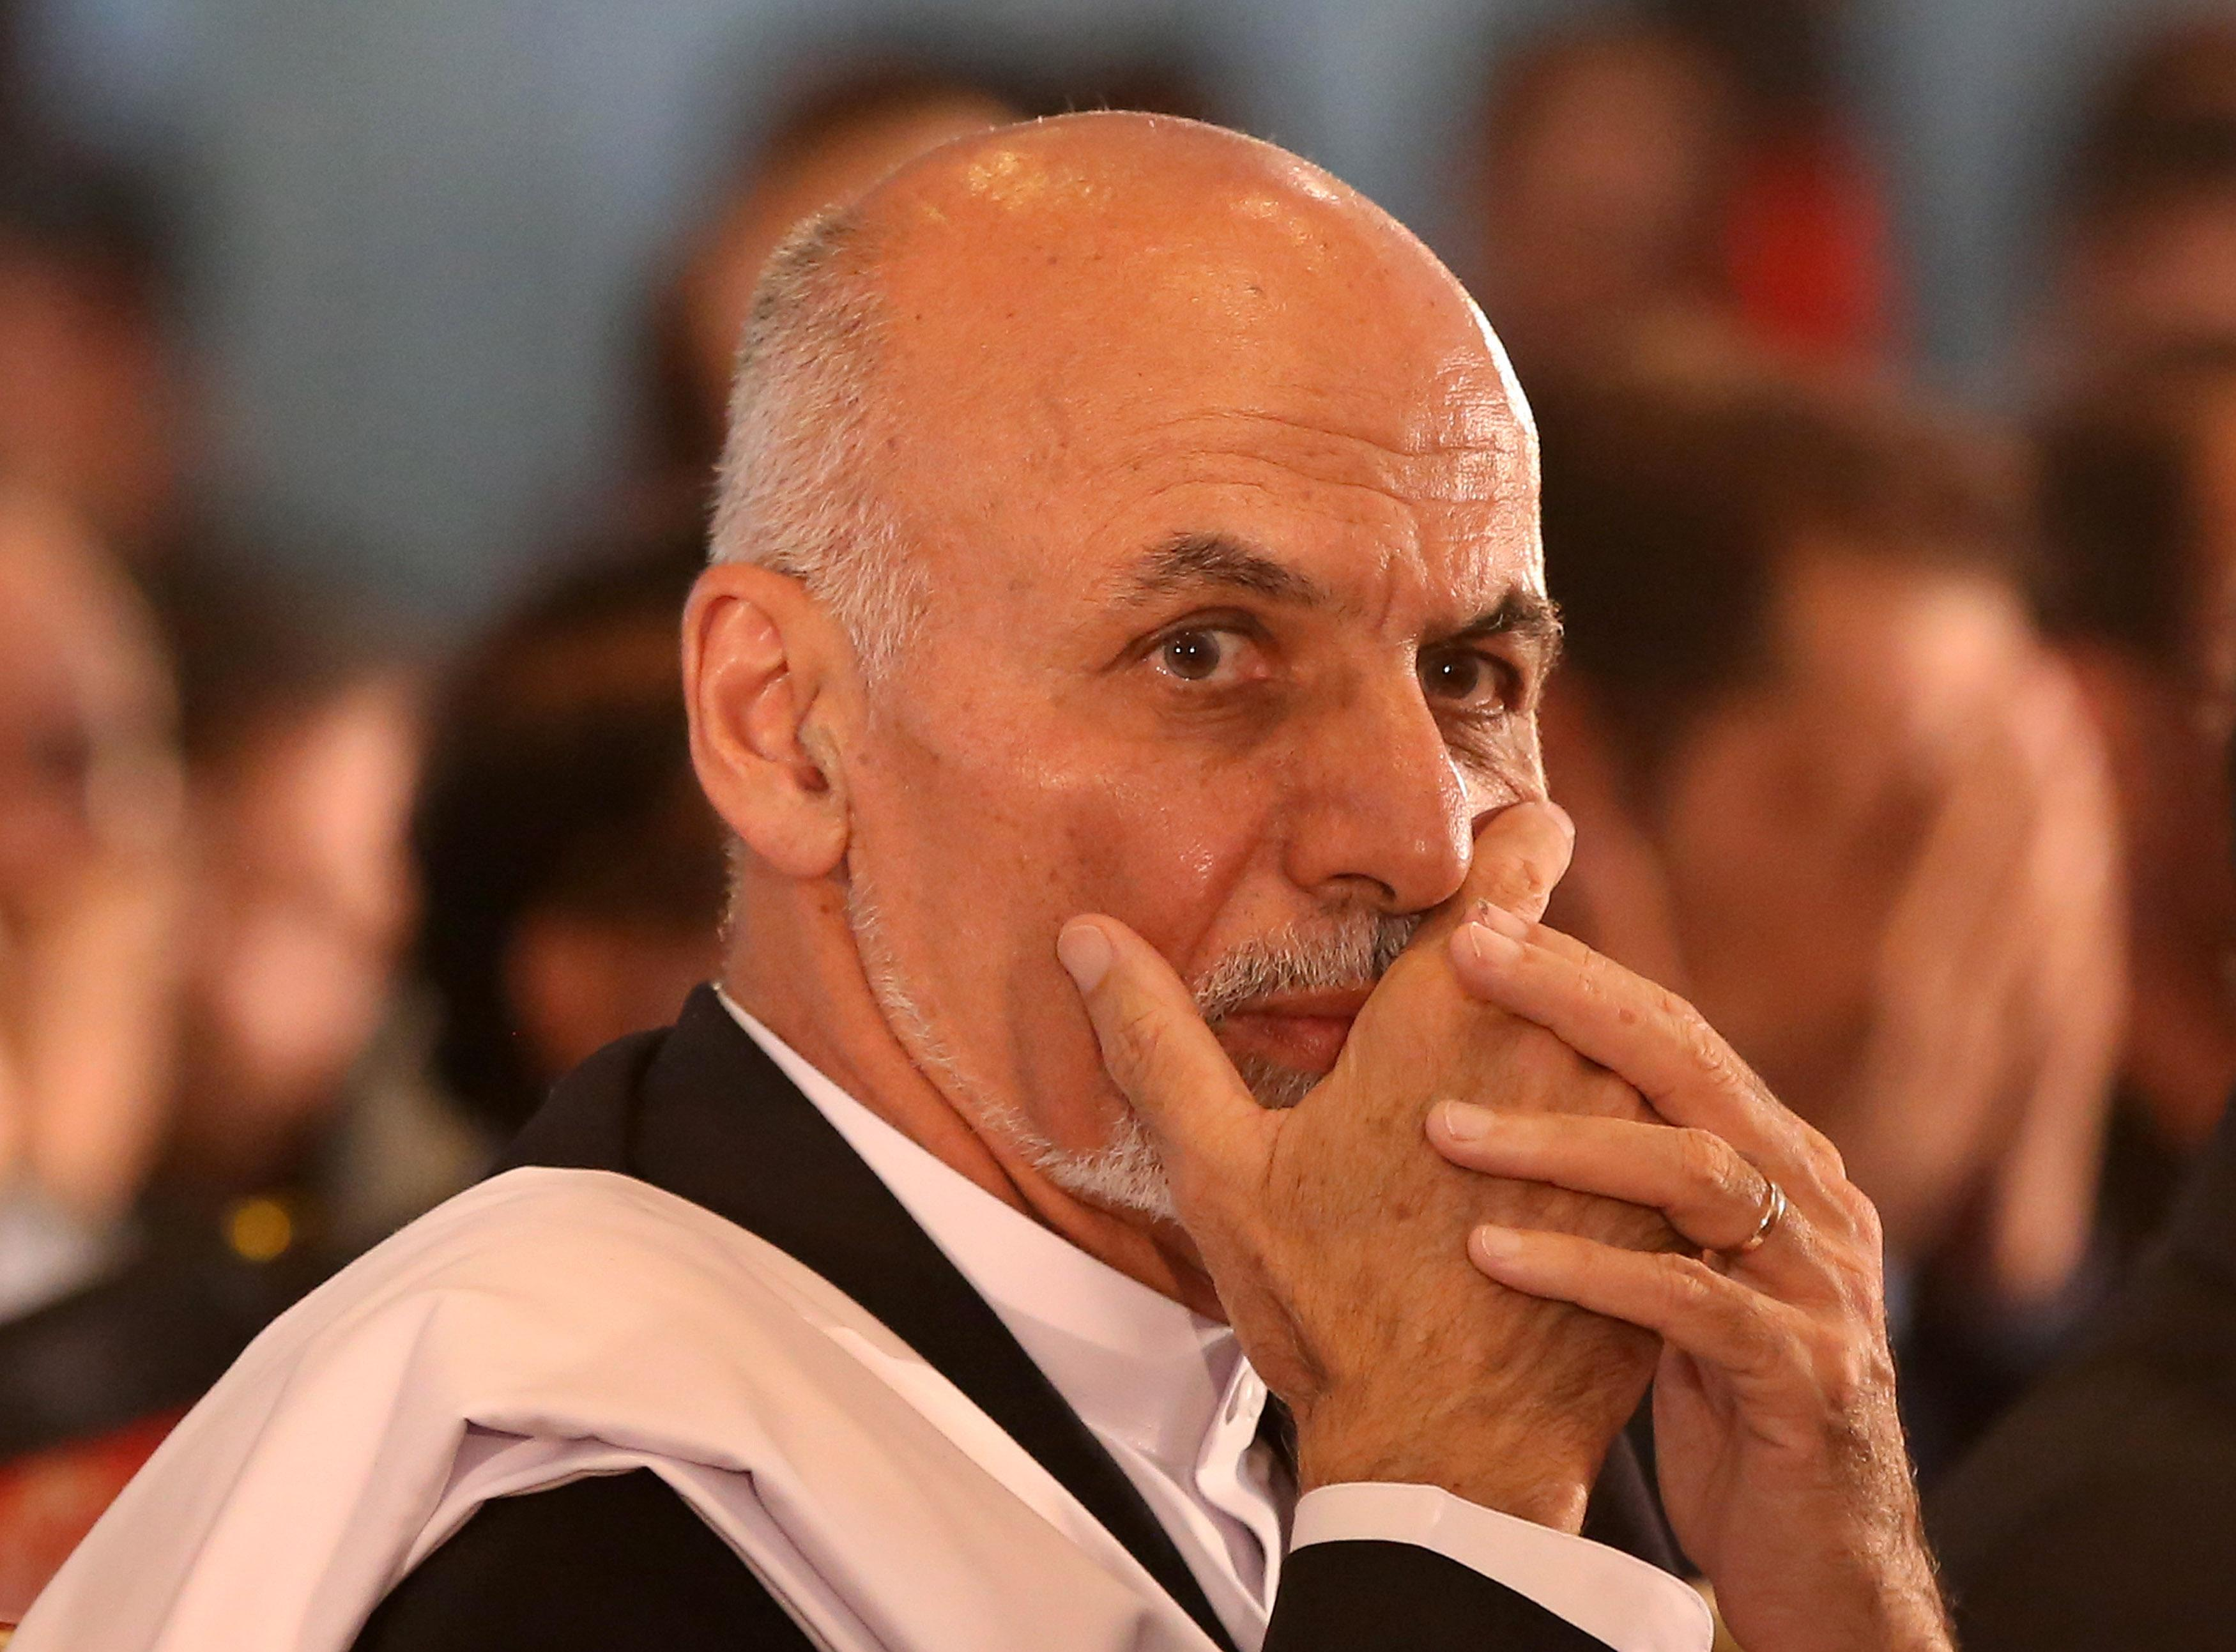 Afghanistan gets new president, replacing Hamid Karzai - CBS